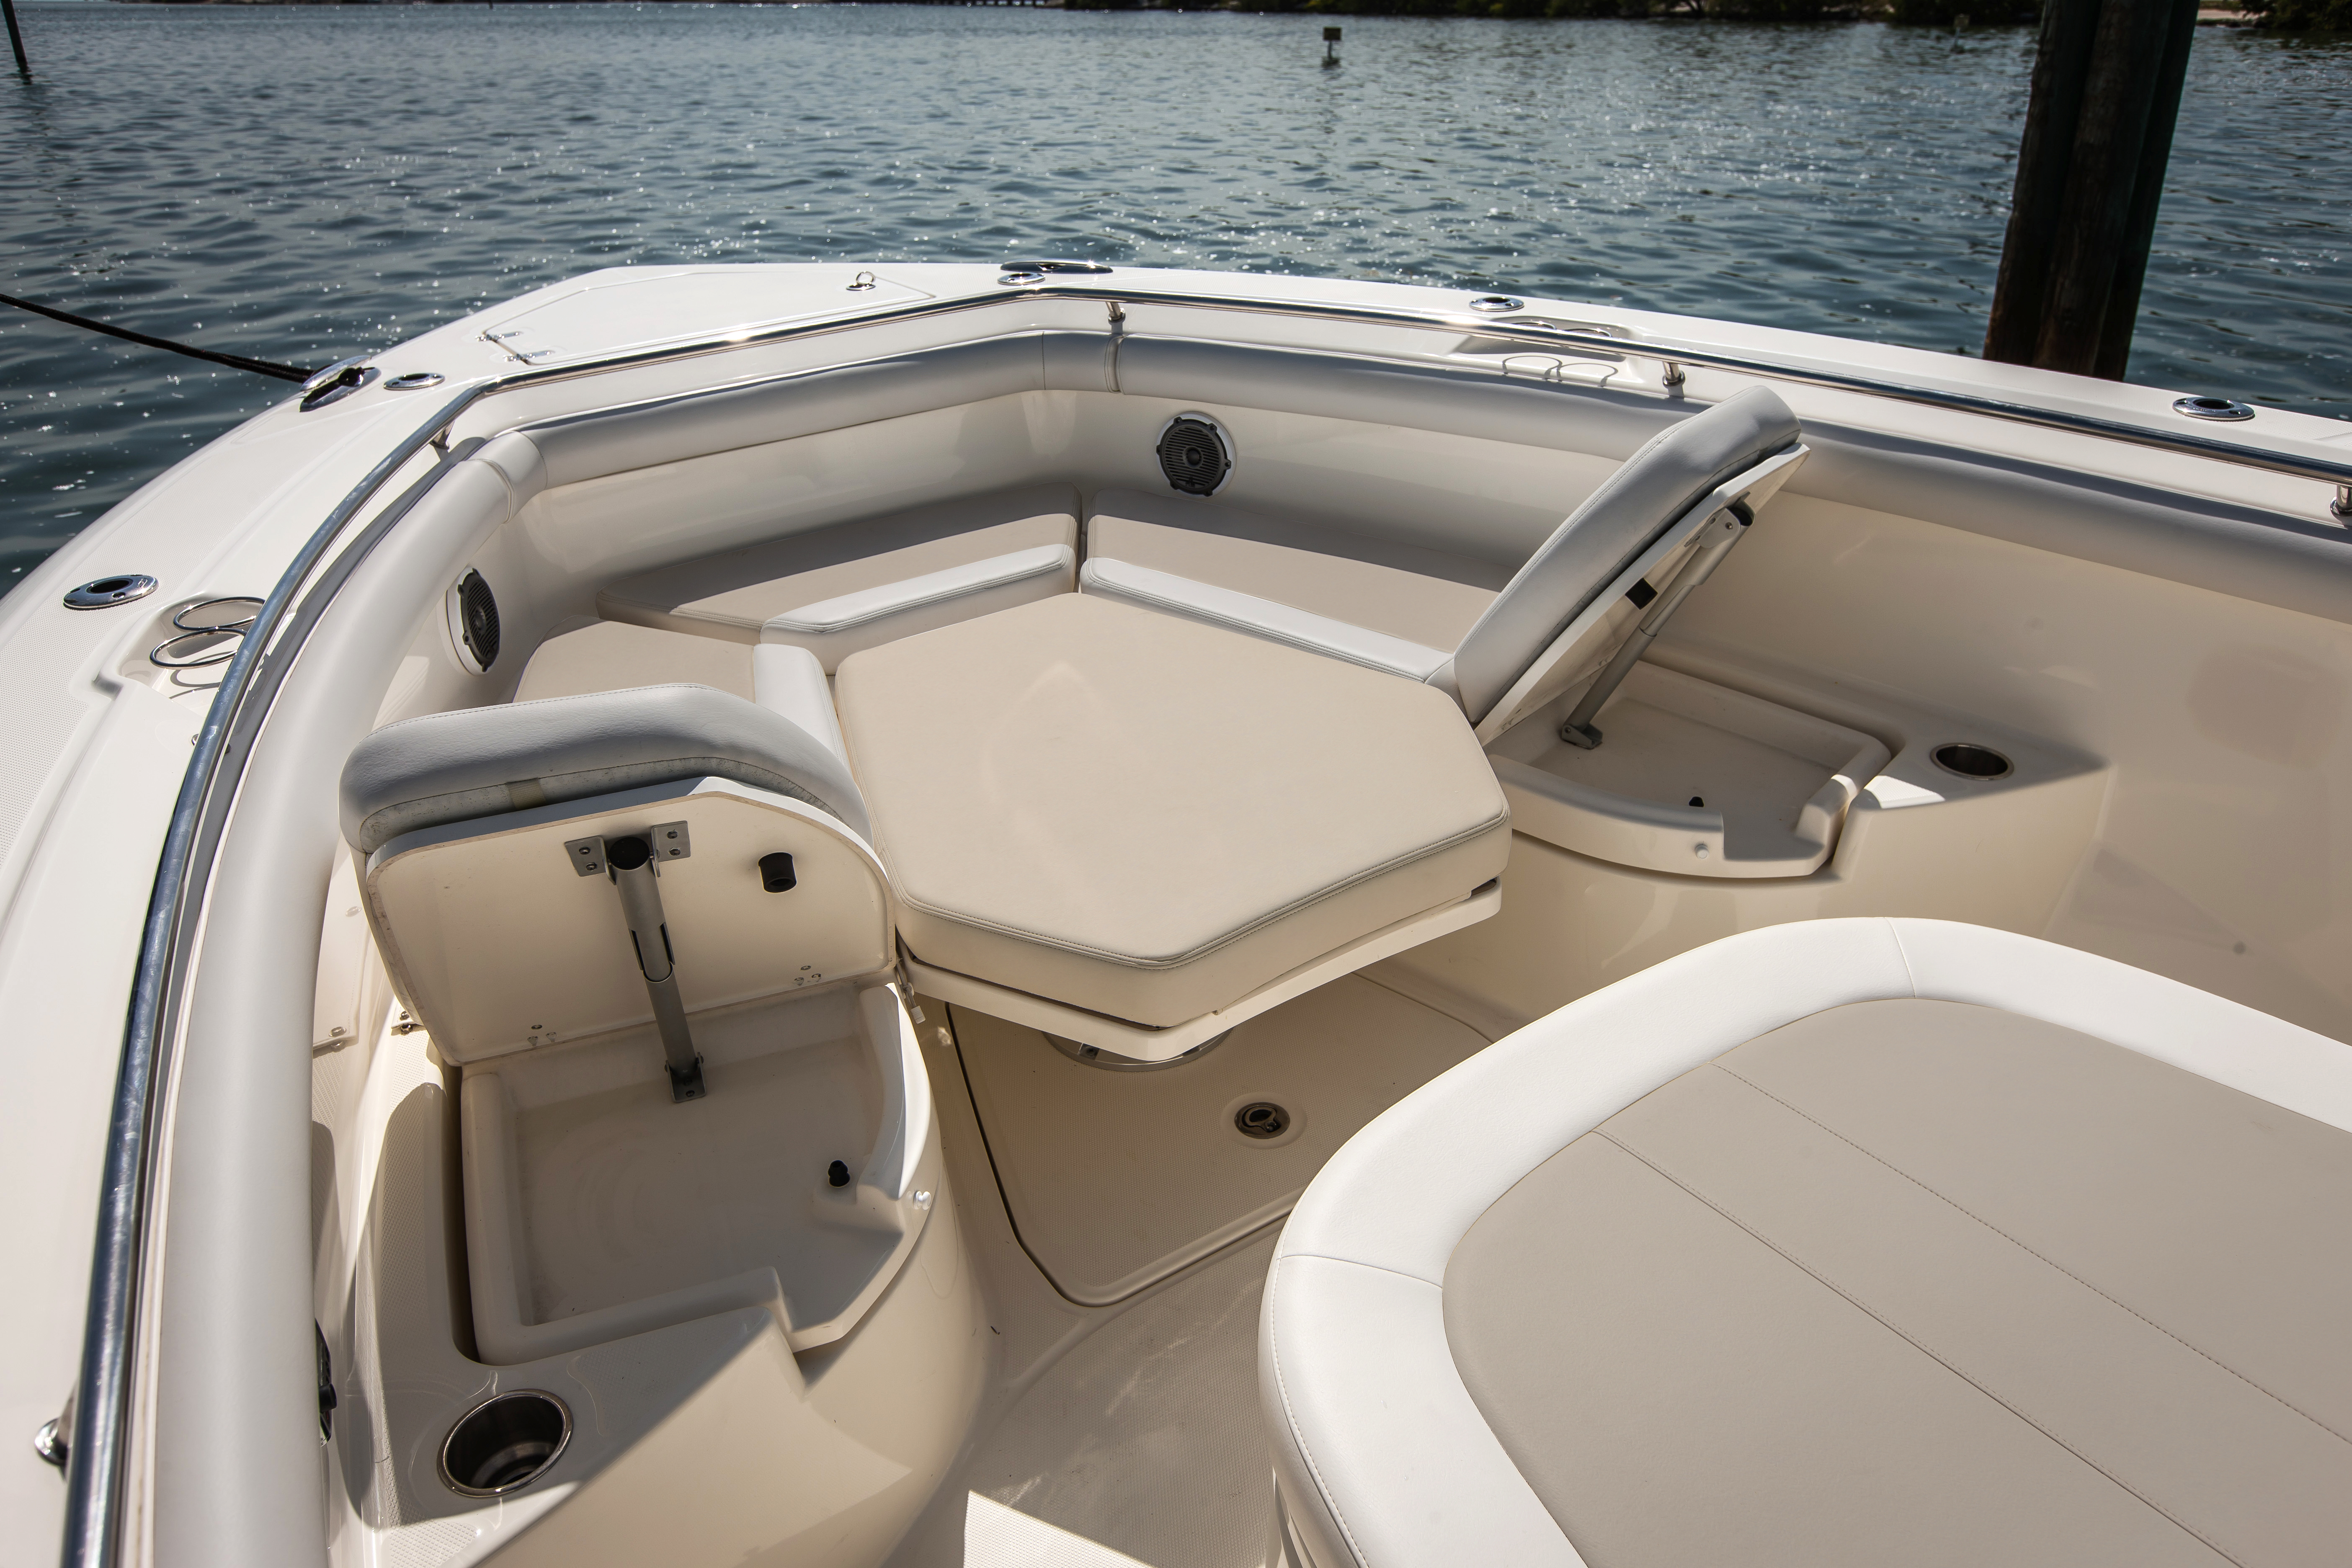 350 Outrage Boat Model | Boston Whaler